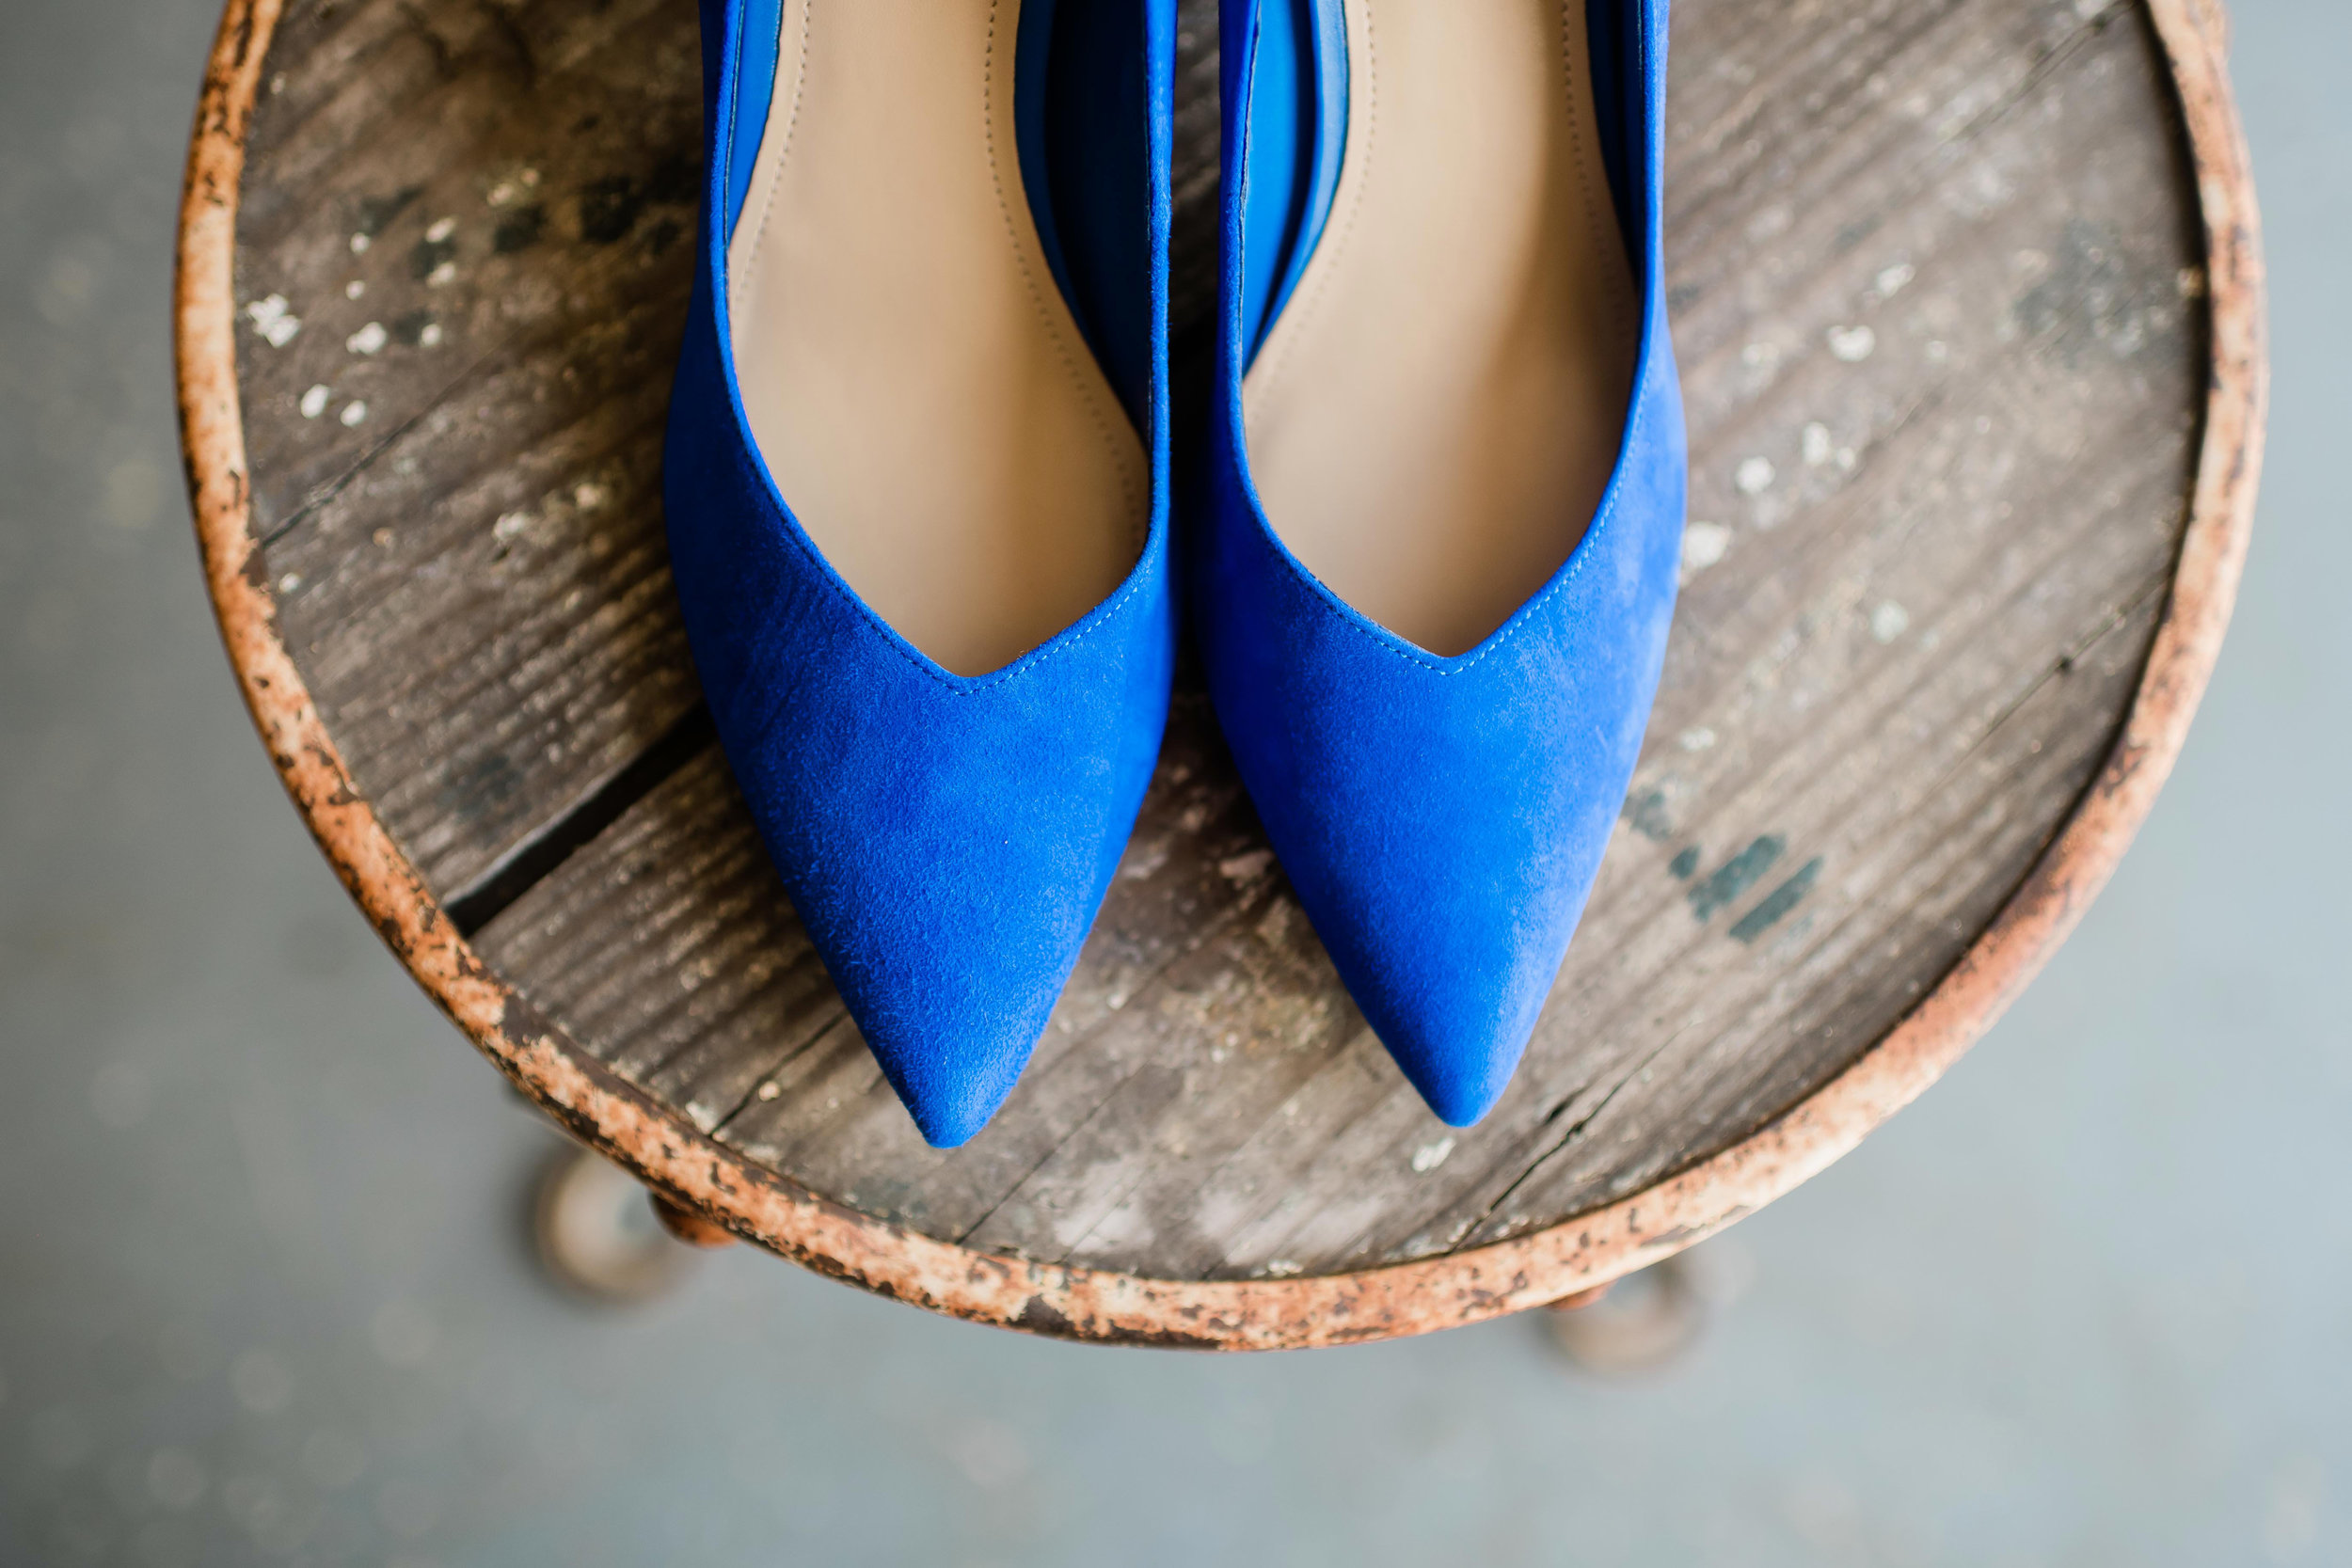 Blue bridal shoes sitting on rusty chair